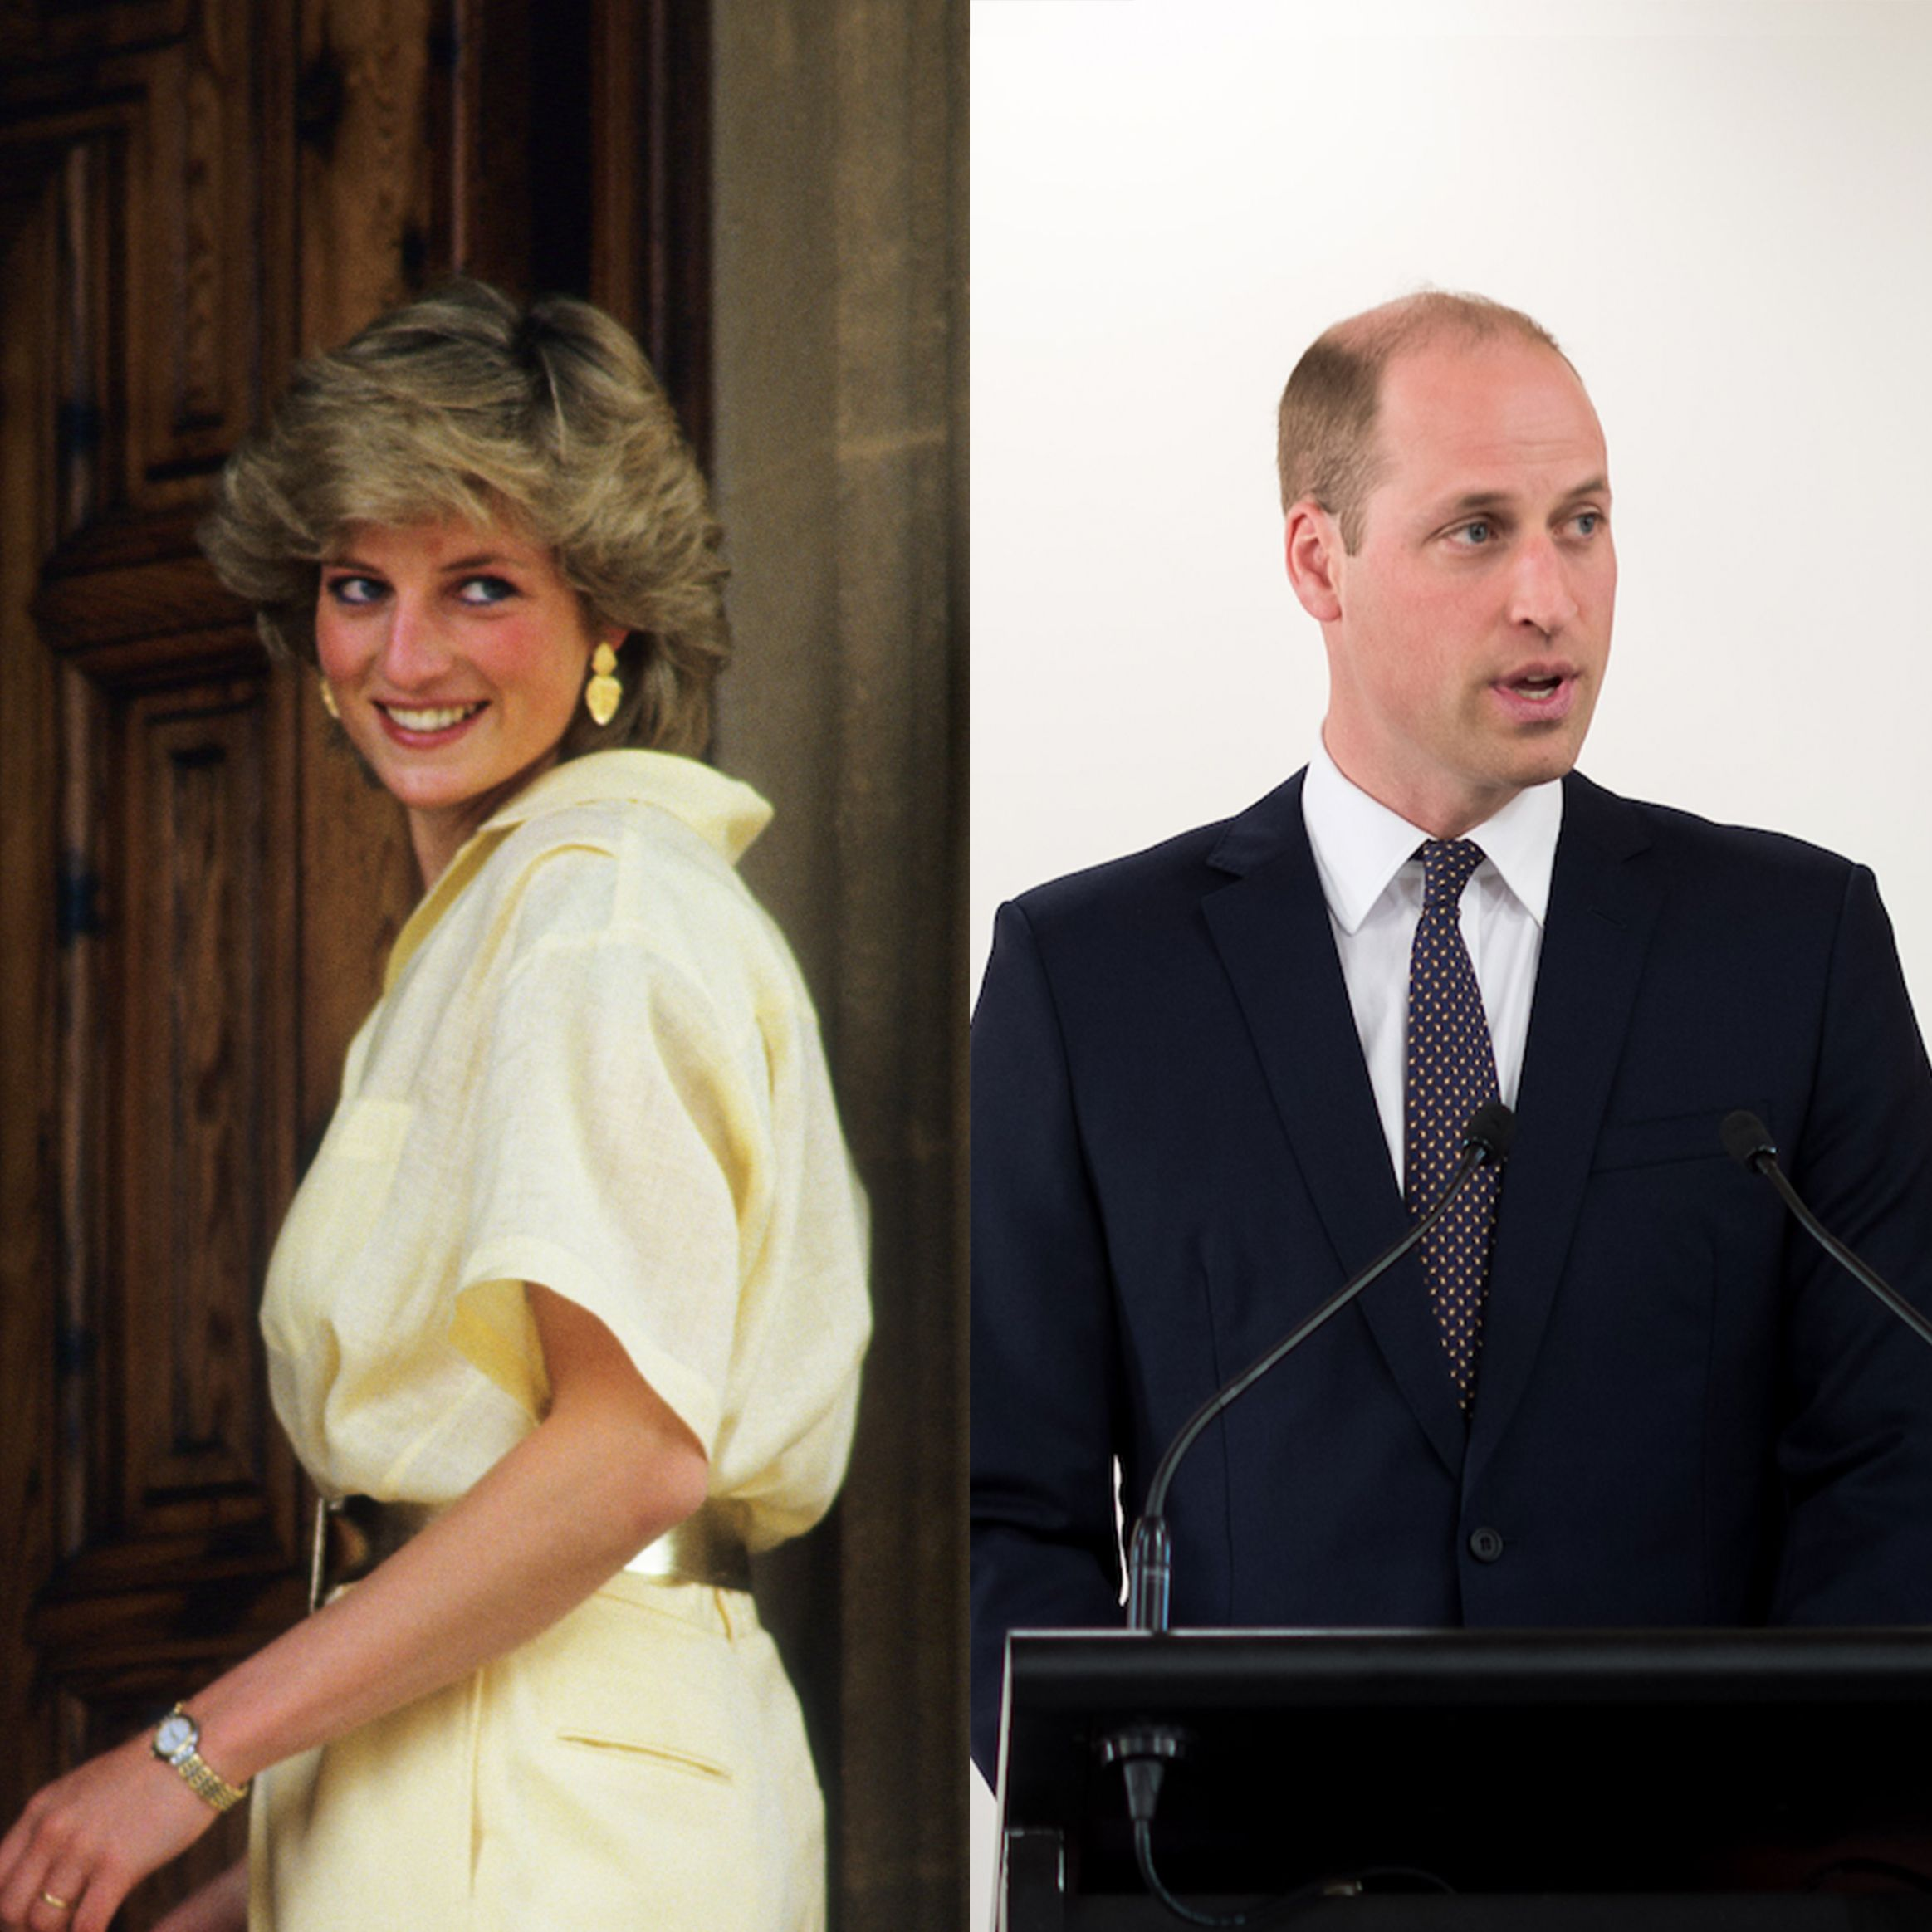 Flipboard: The Duke Of Sussex Discussed Diana, Princess Of